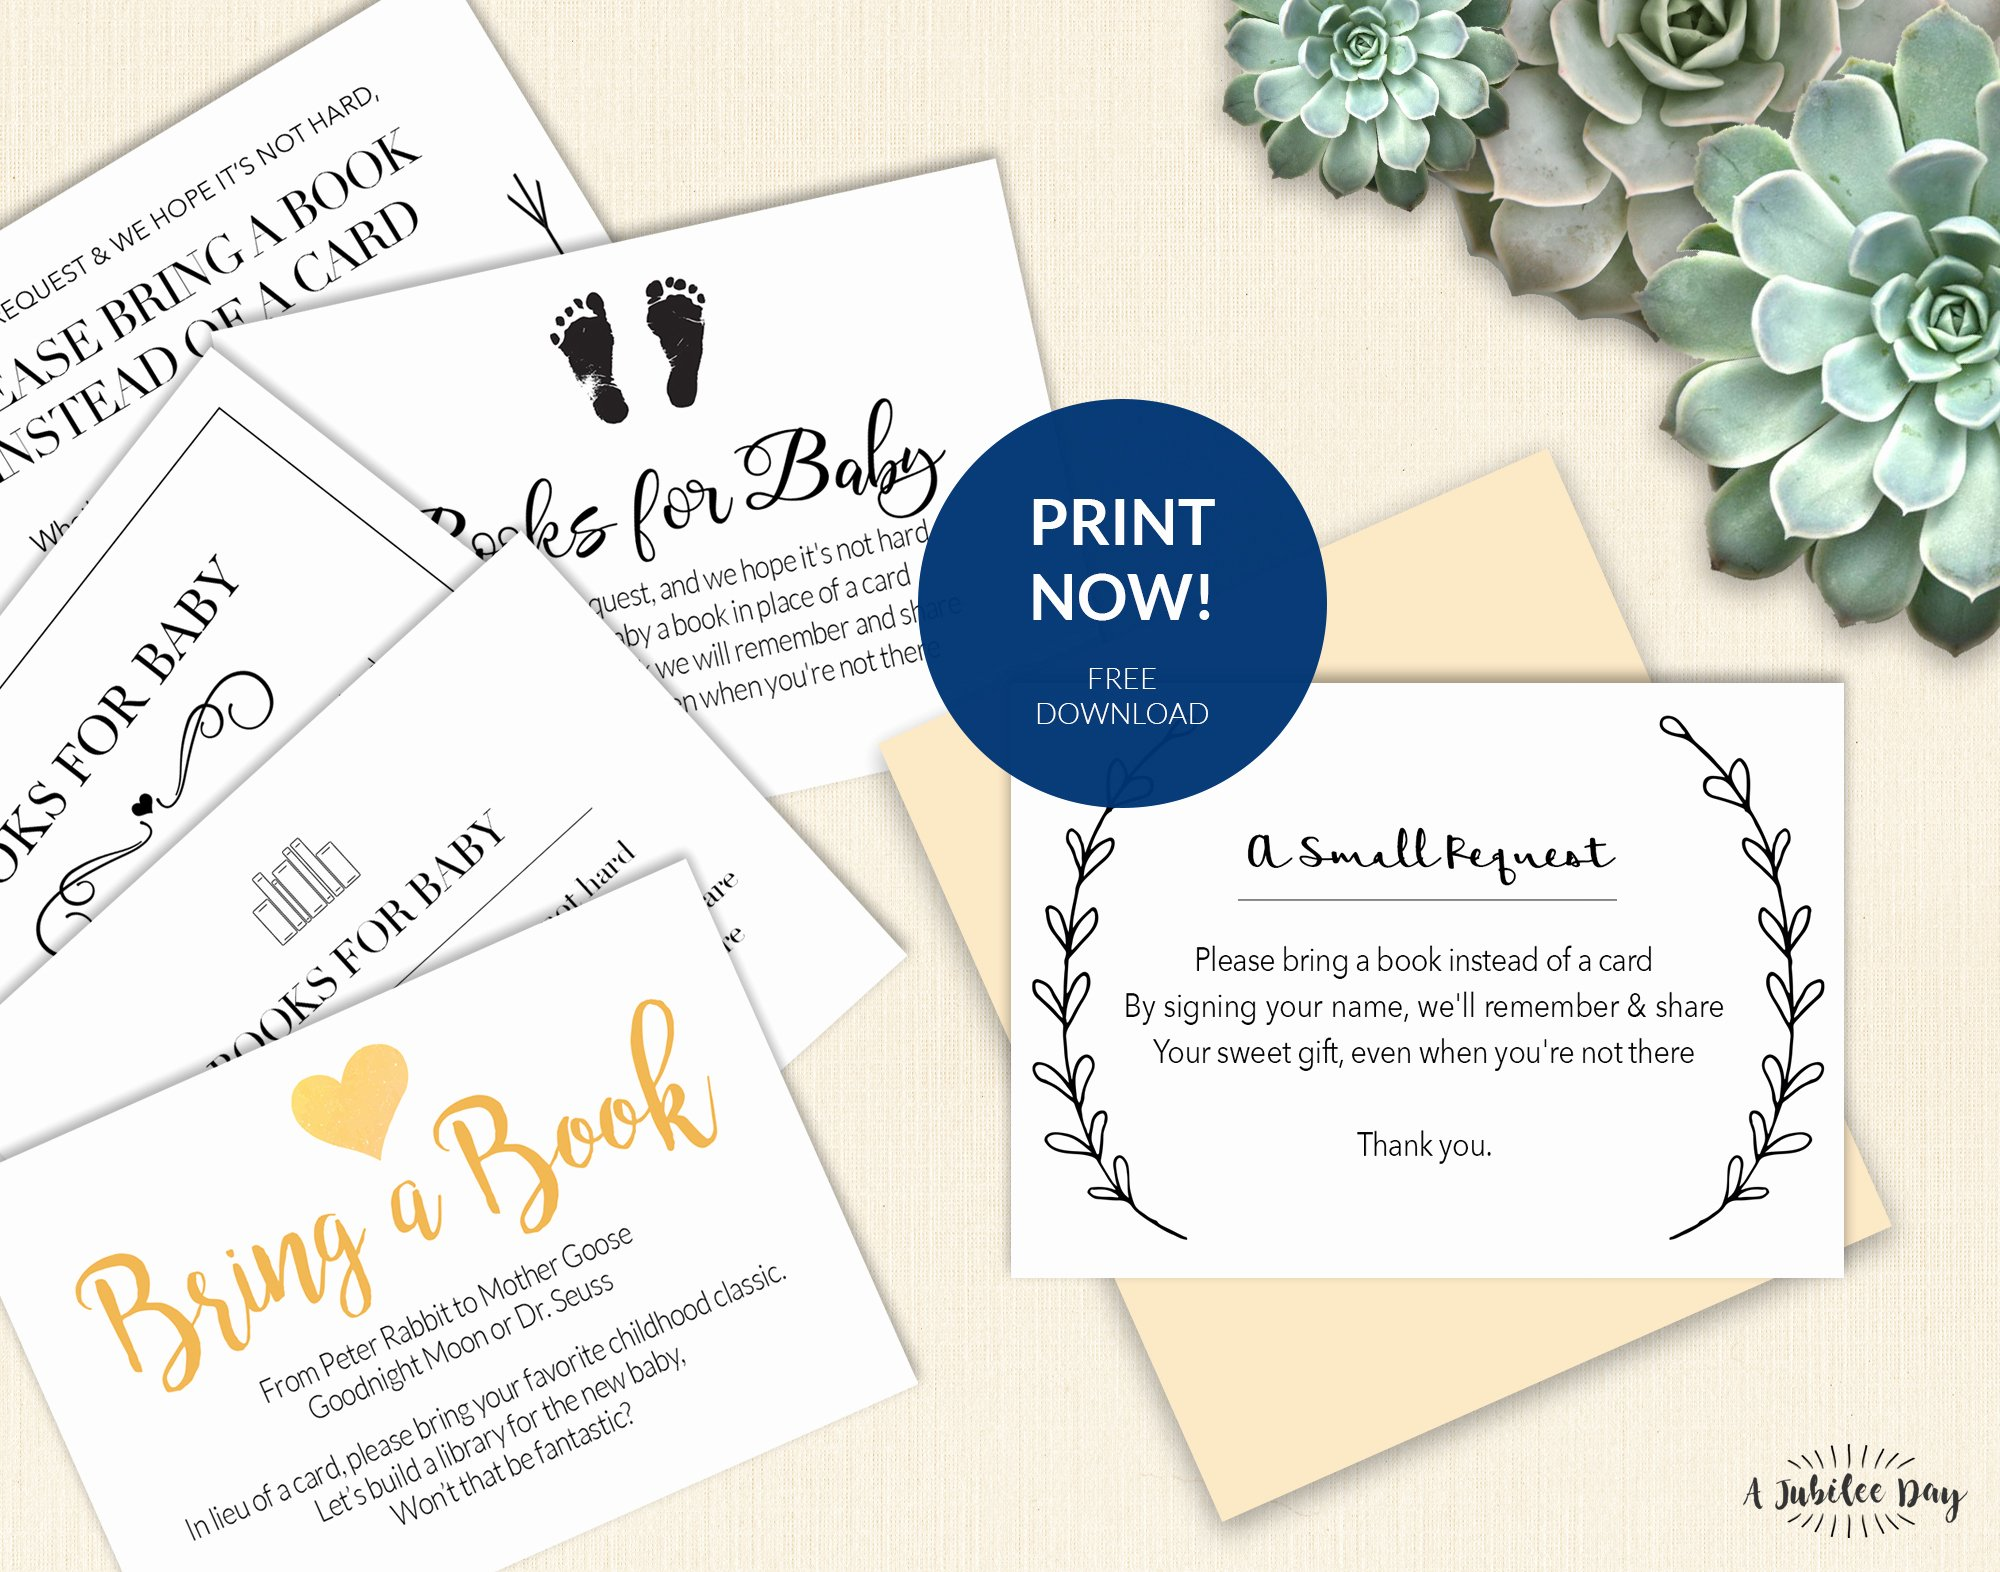 Baby Shower Card Printable Luxury Bring A Book Instead Of Card Free Printable A Jubilee Day